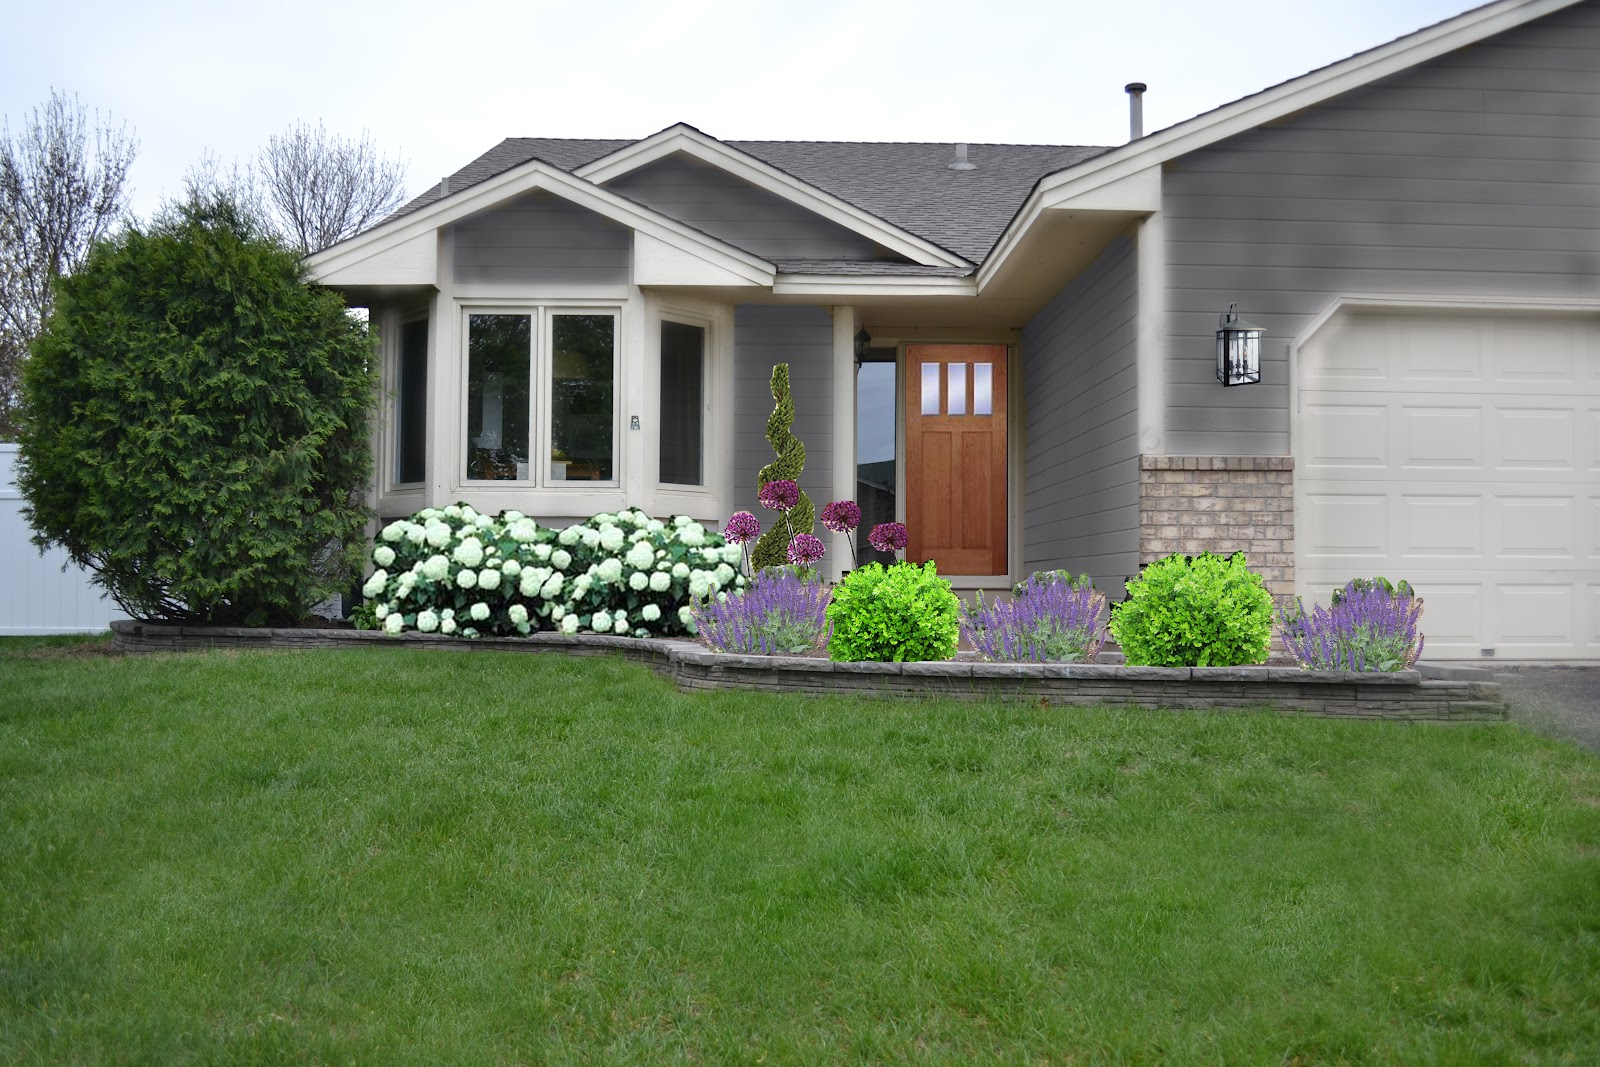 Dwelling cents front garden ideas - Small garden front of house ...